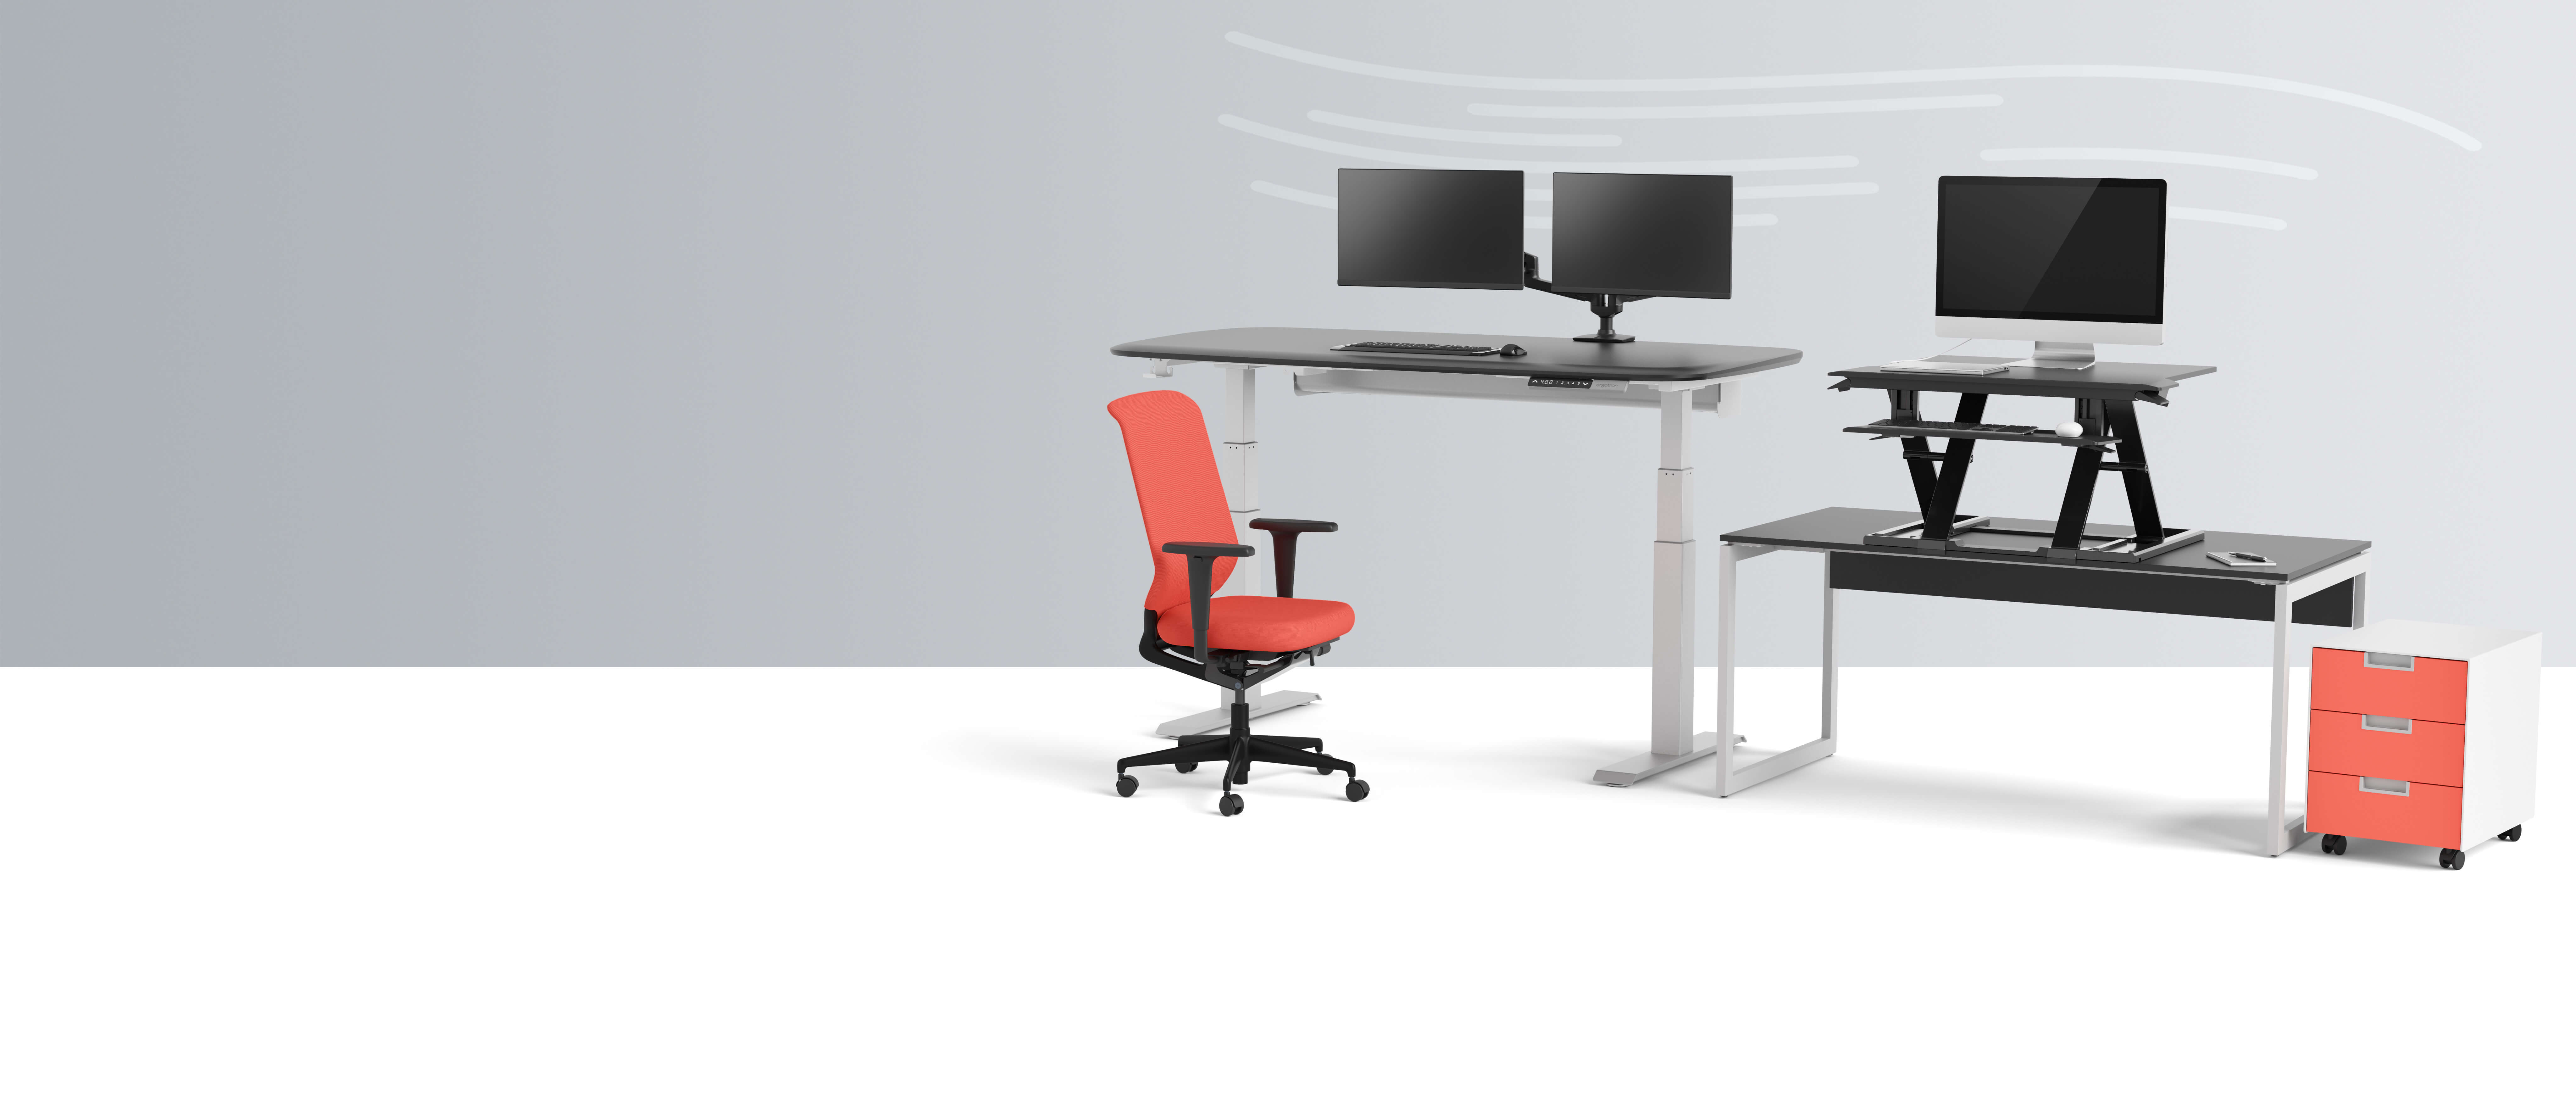 Two desks with orange chair